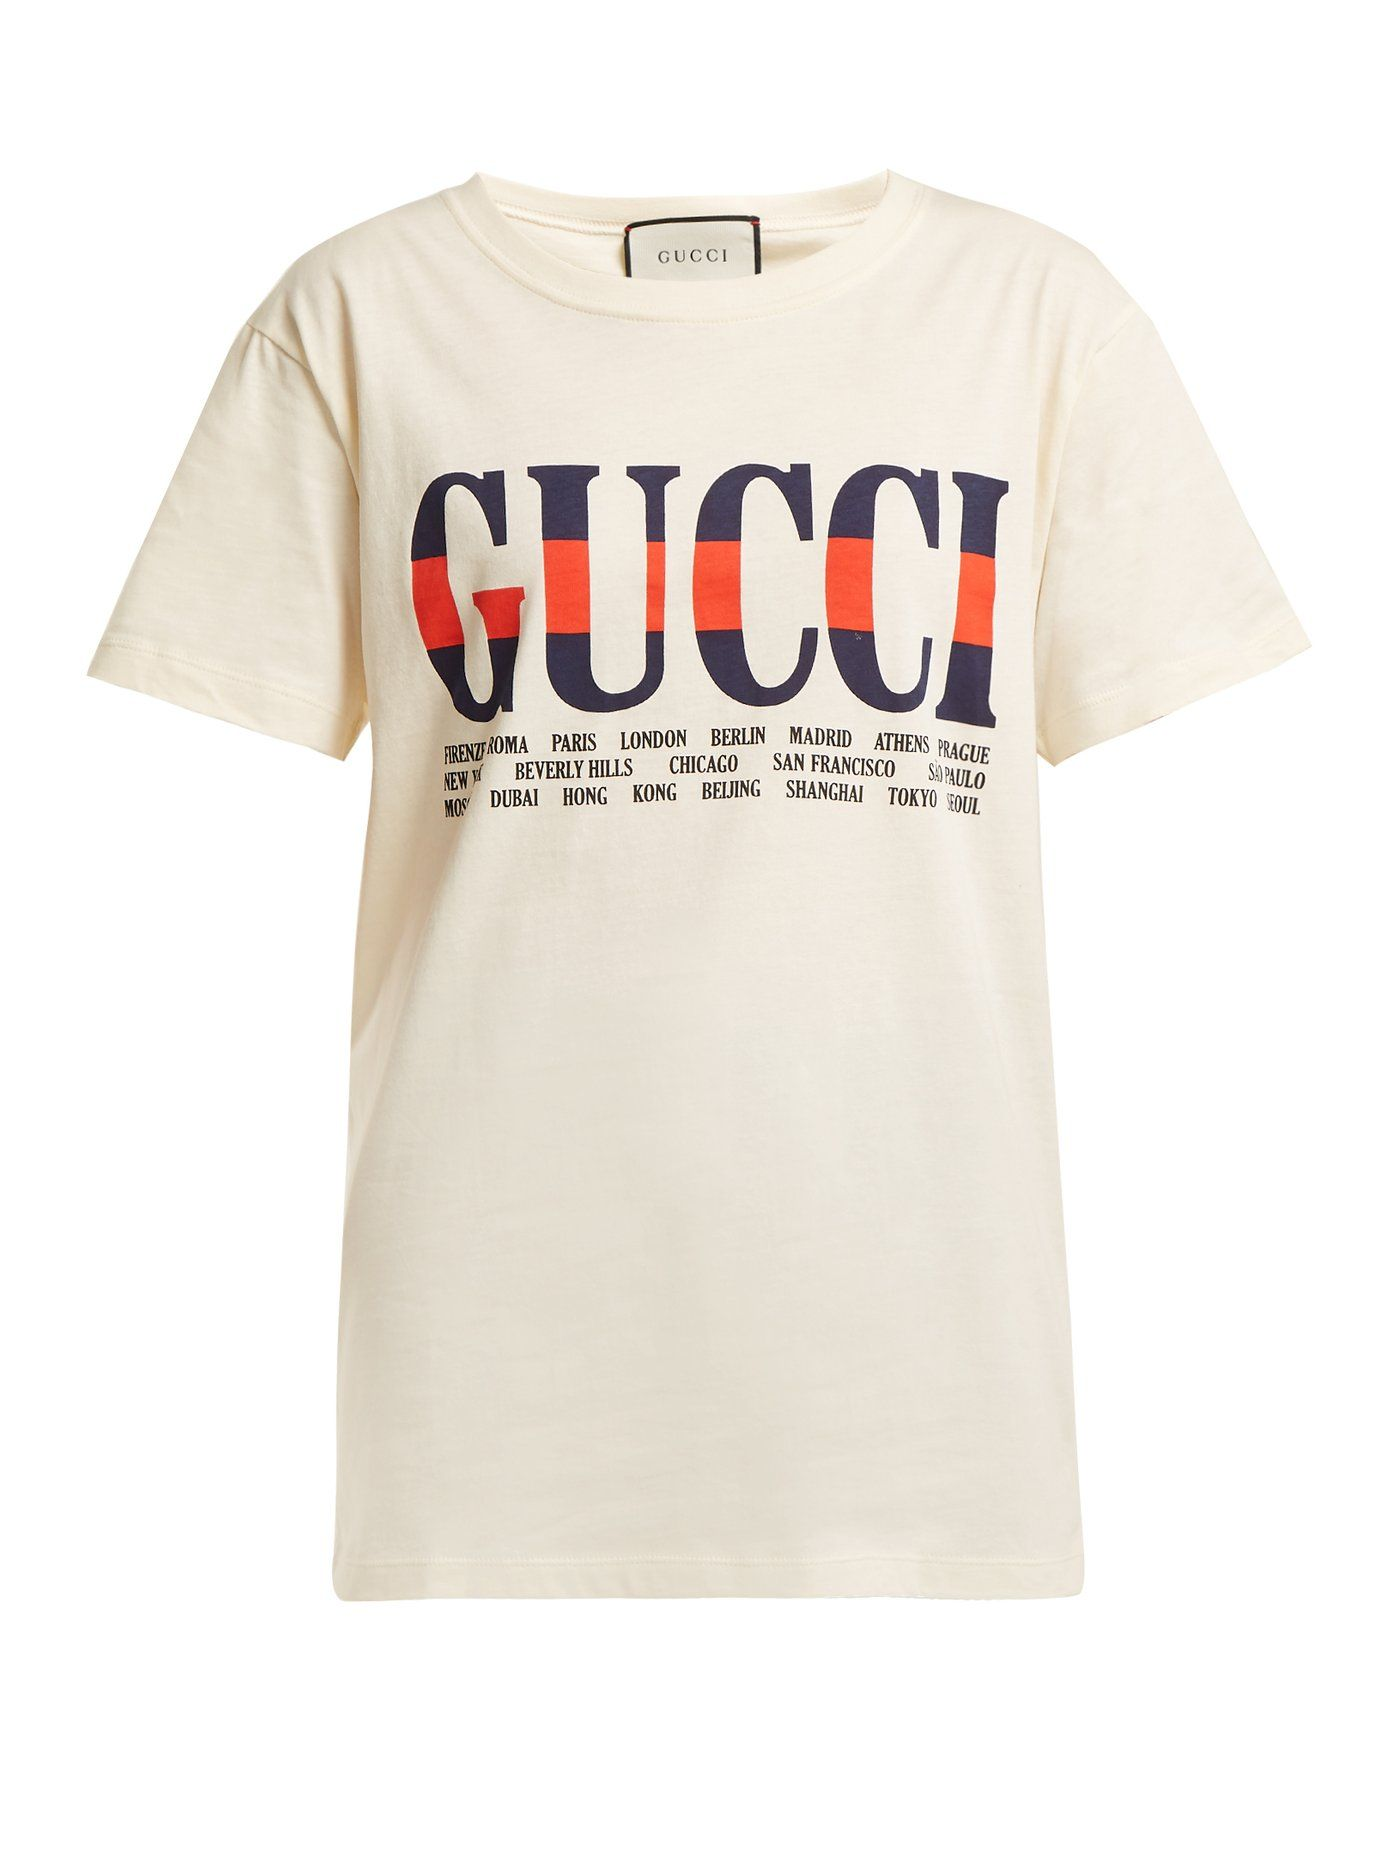 Logo Print Cotton T Shirt Gucci Matchesfashion Uk Cute Lil